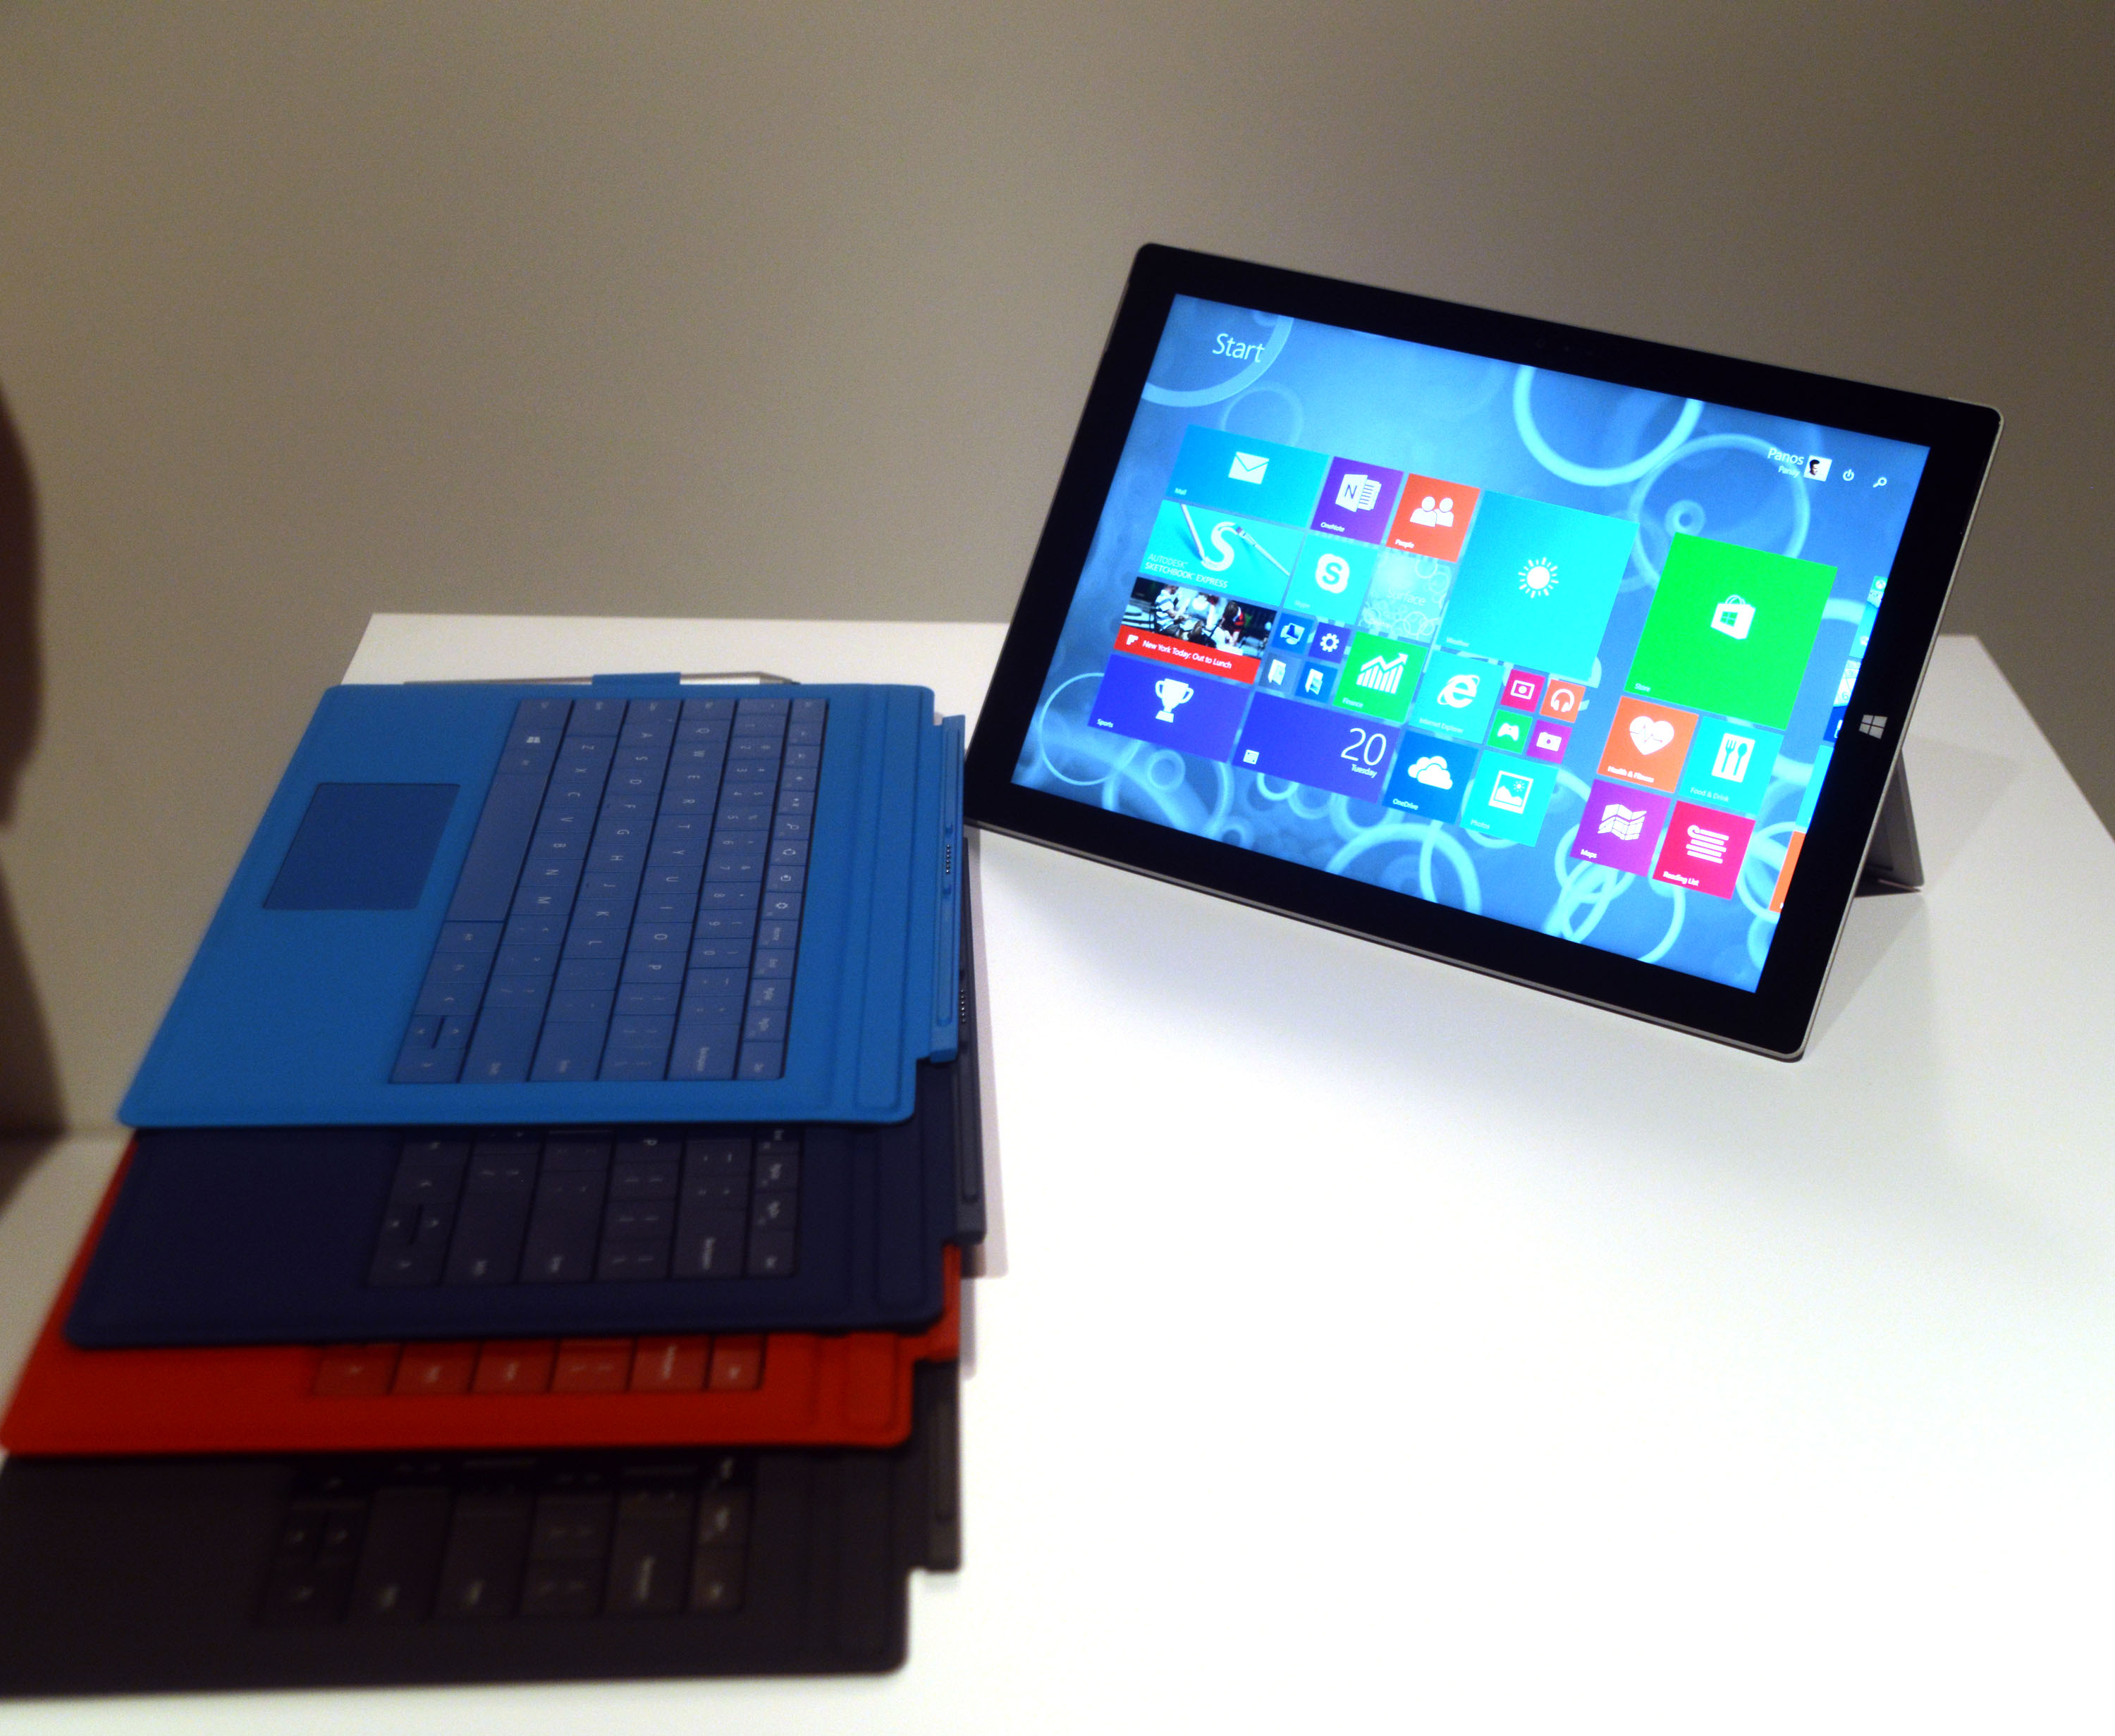 Microsoft Pro 3 Surface Tablet at Skylight Clarkson Sq on May 20, 2014 in New York City.